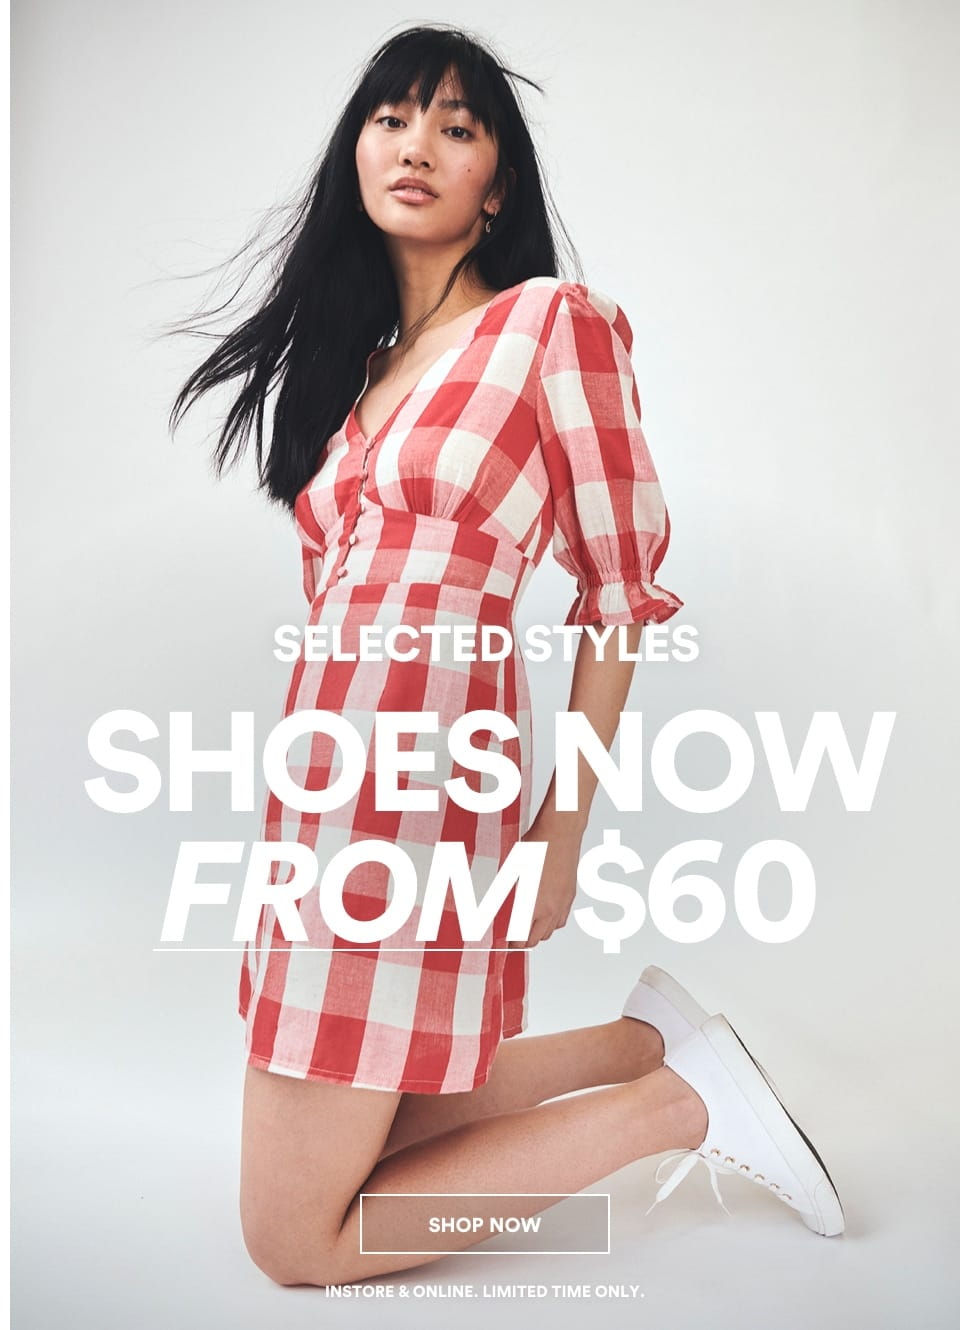 Shoes Now From $60. Click to shop.